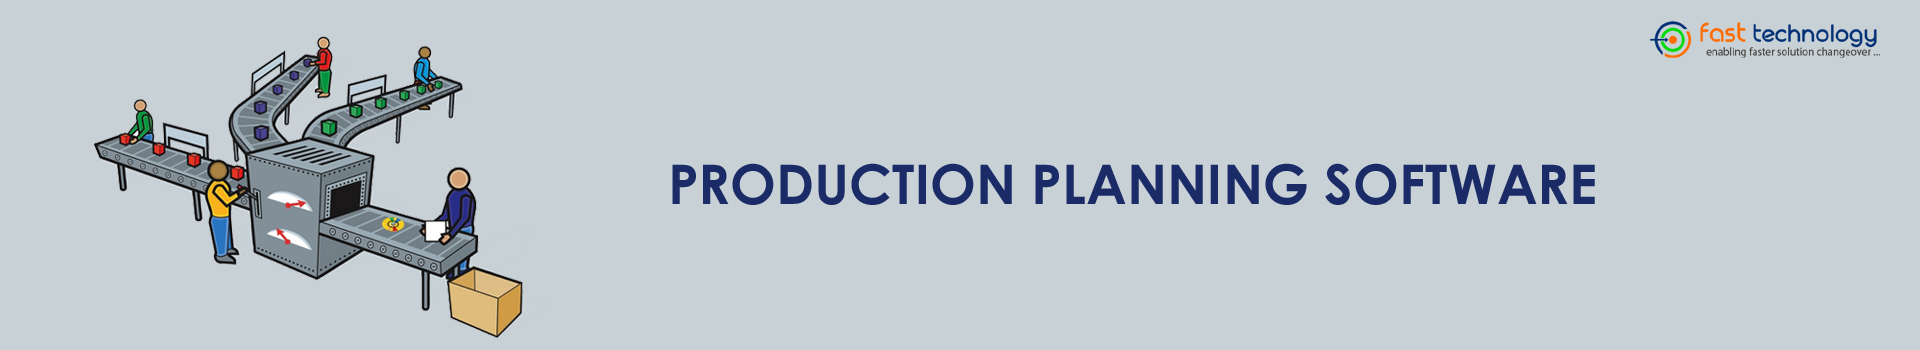 production-planning-software-banner